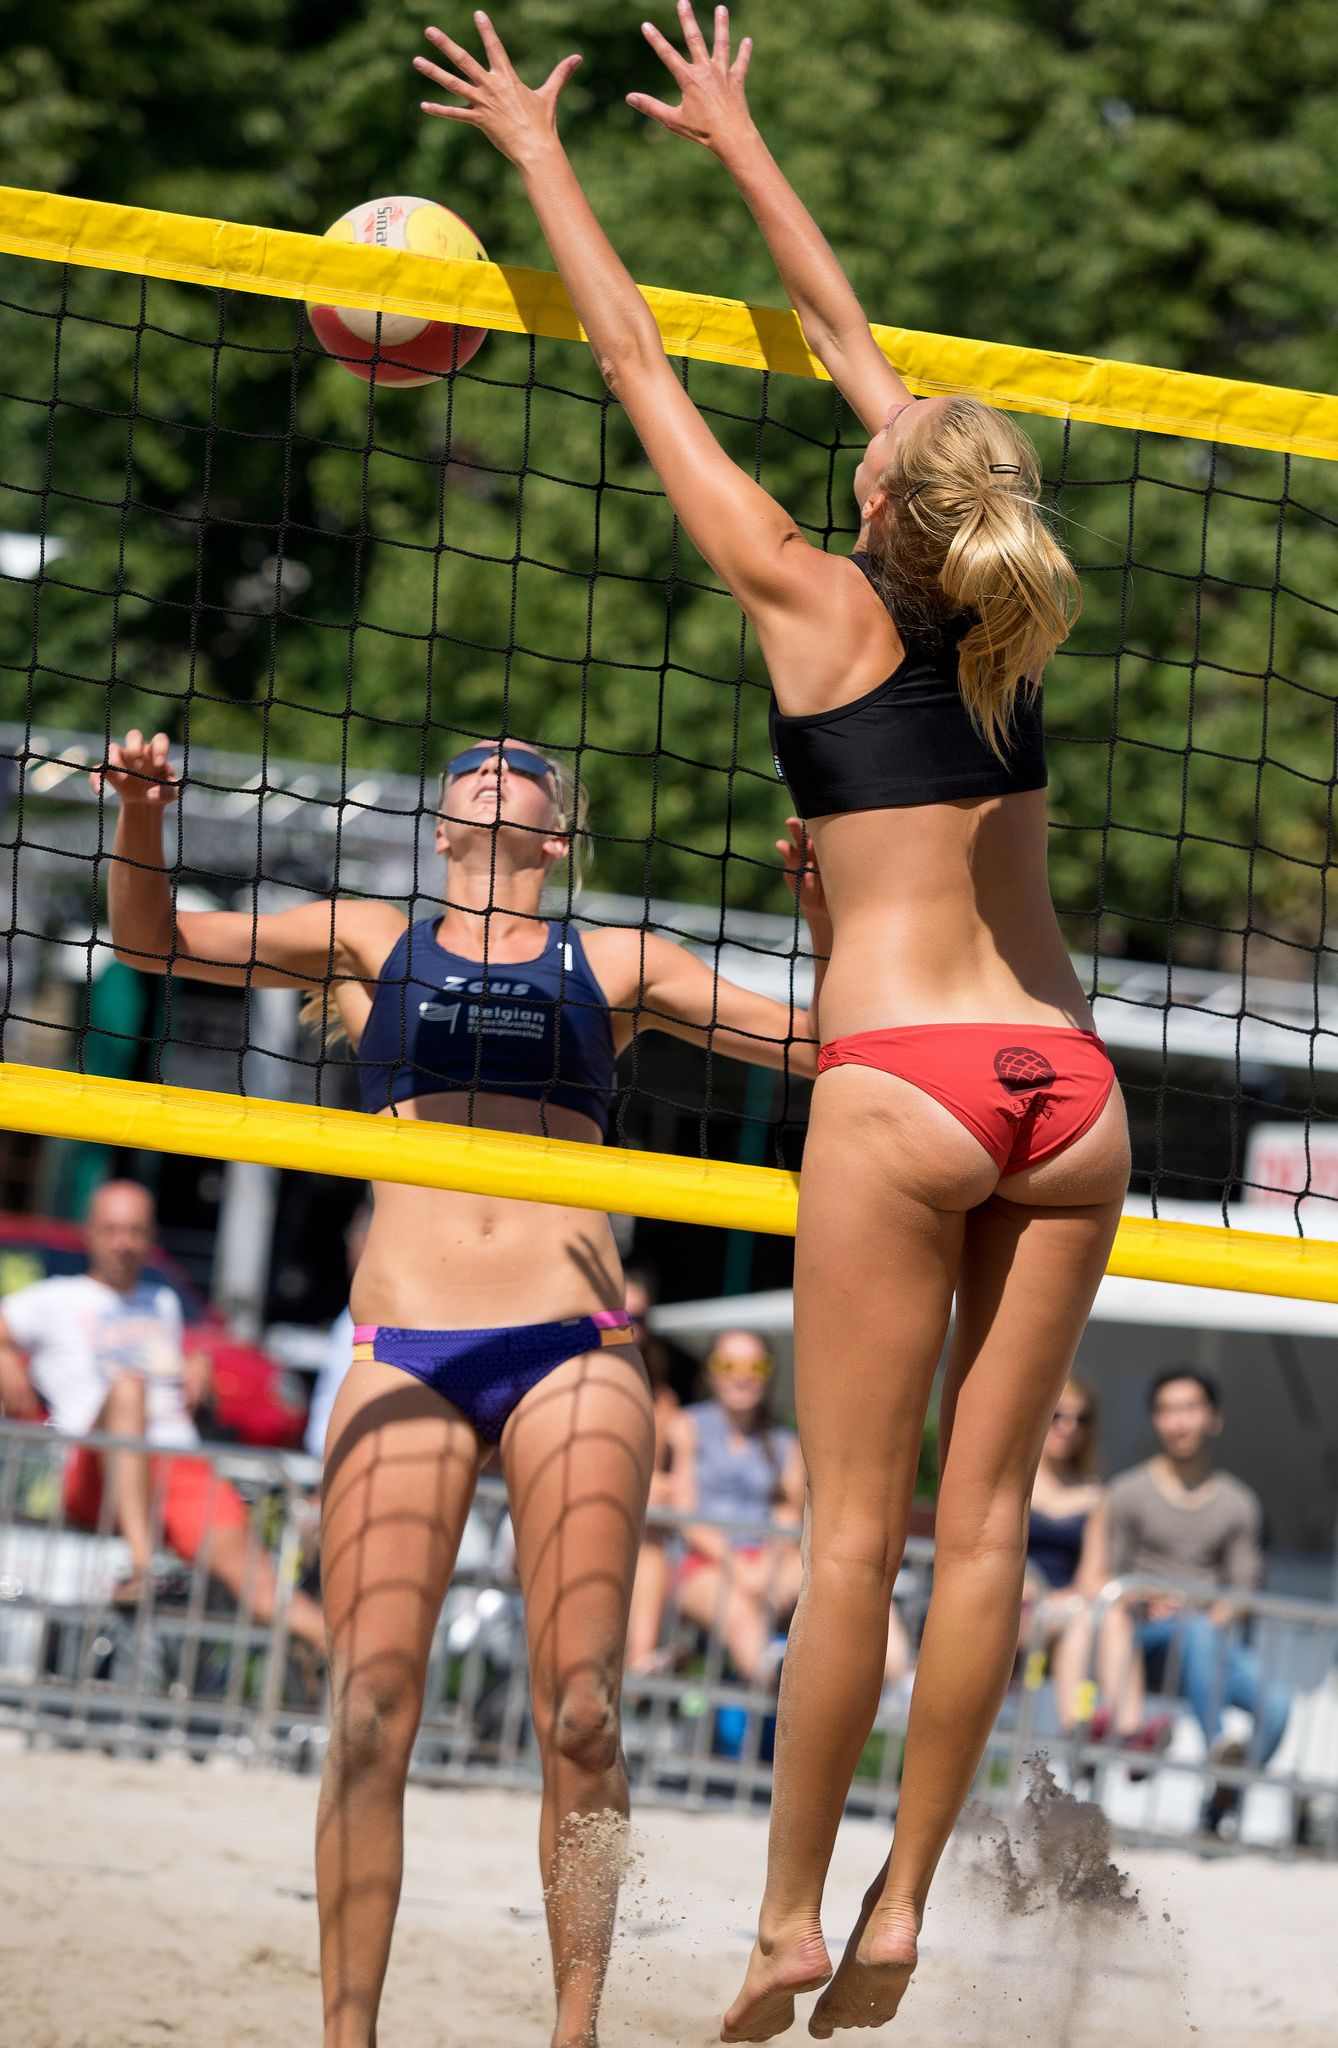 Pin By Kevin Carson On Beach Volleyball In 2020 Women Volleyball Beach Volleyball Volleyball Shorts